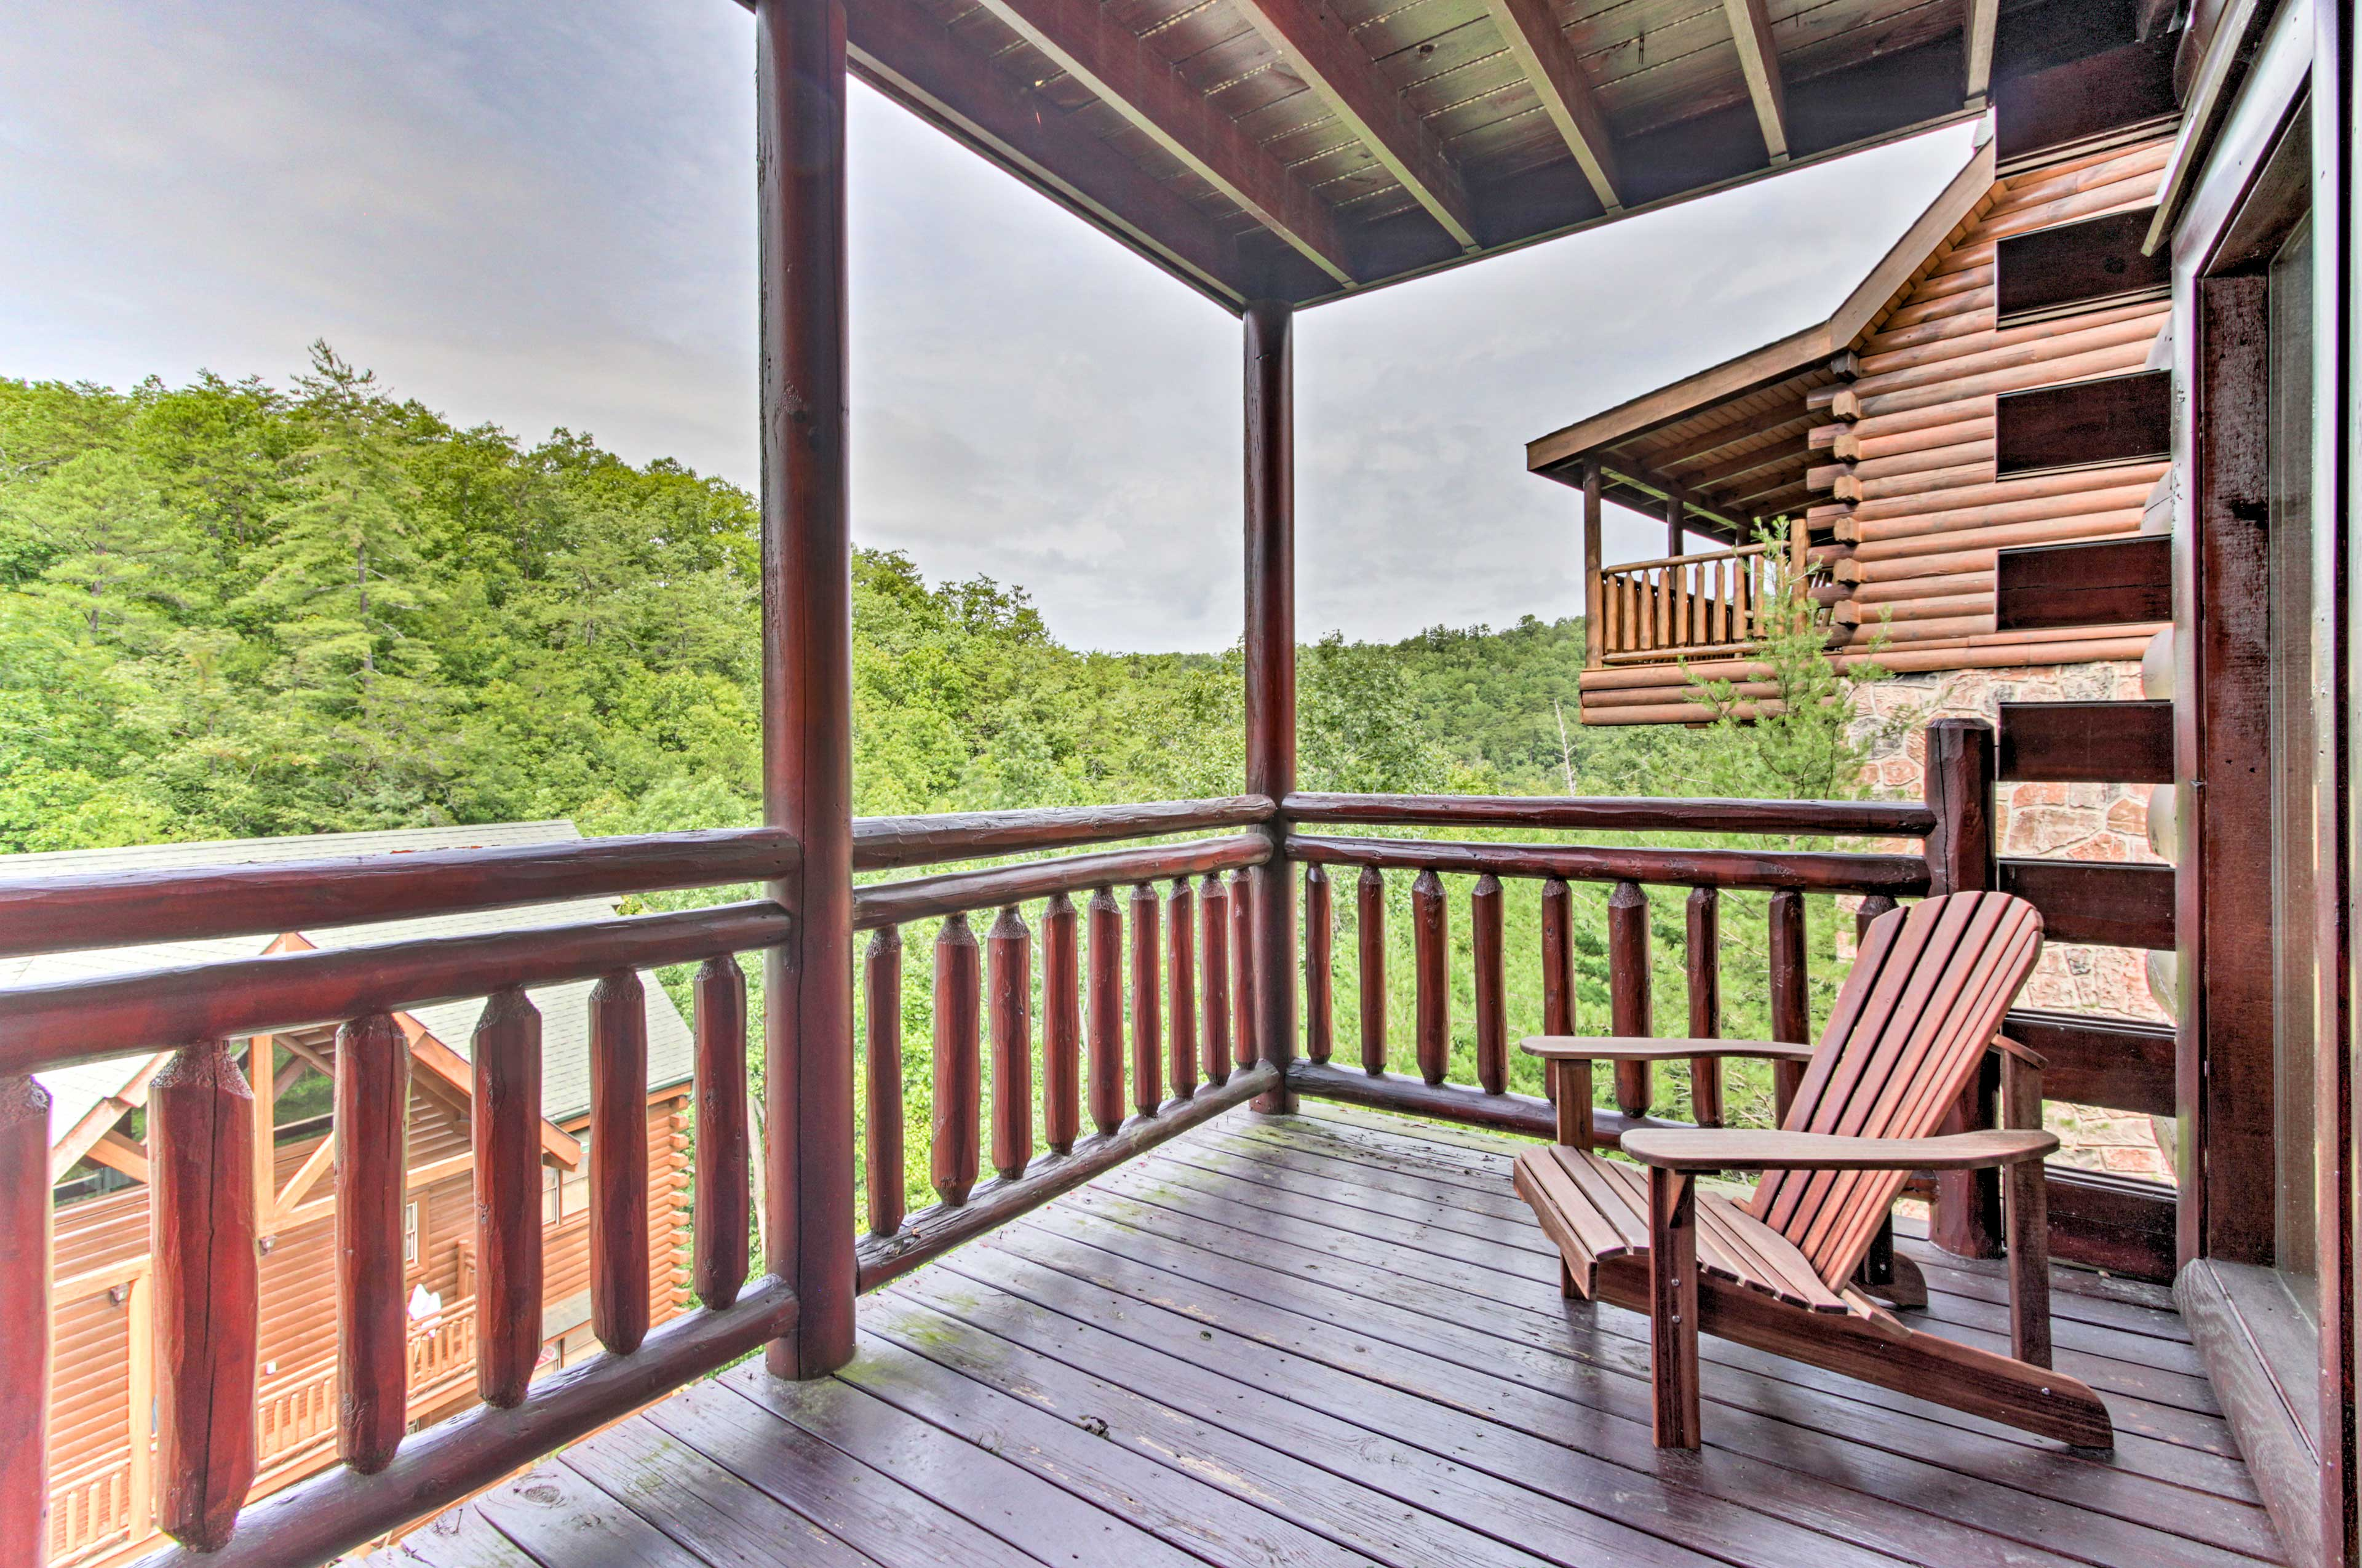 Gaze out into the nature and soak in all that Sevierville has to offer.